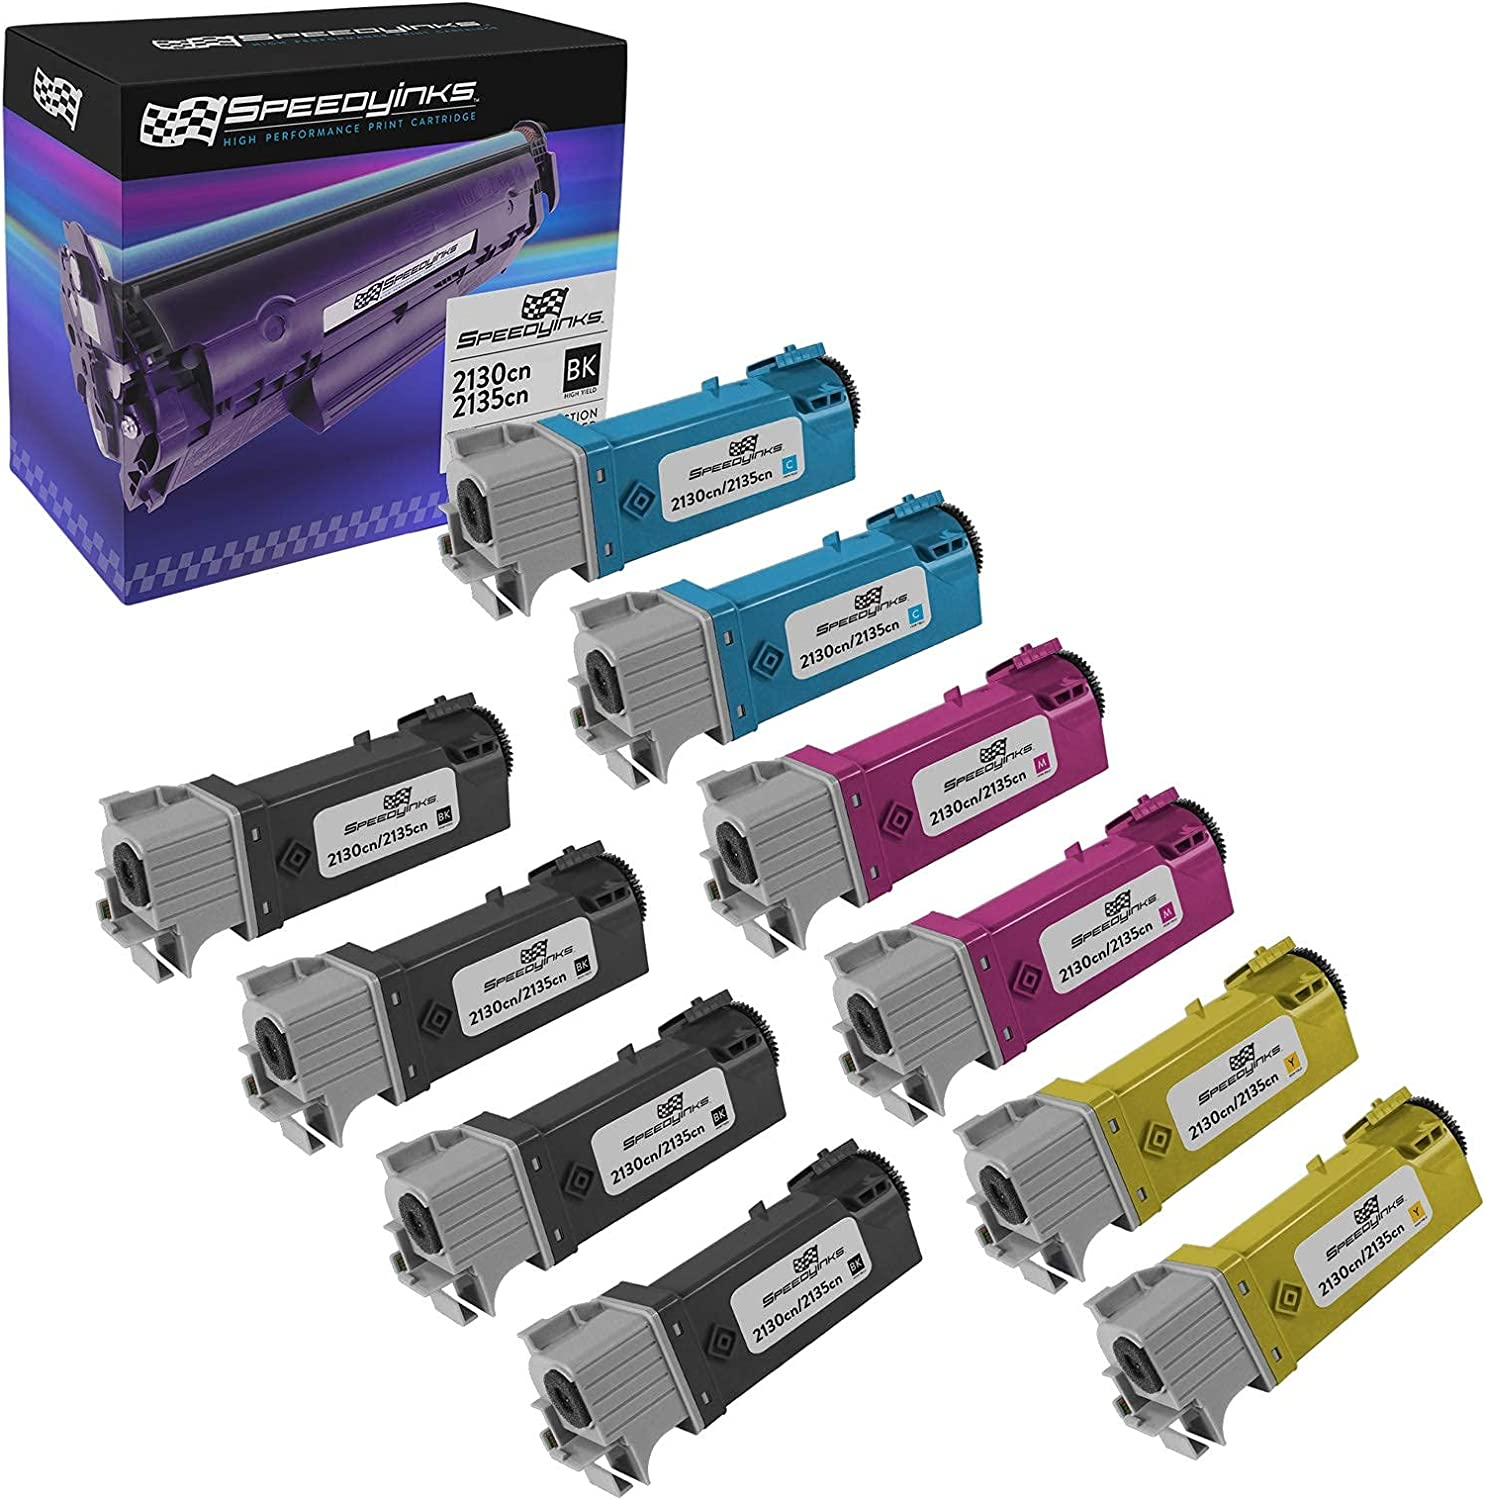 Speedy Inks Compatible Toner Cartridge Replacement for Dell 2130cn High-Yield (4 Black, 2 Cyan, 2 Magenta, 2 Yellow, 10-Pack)